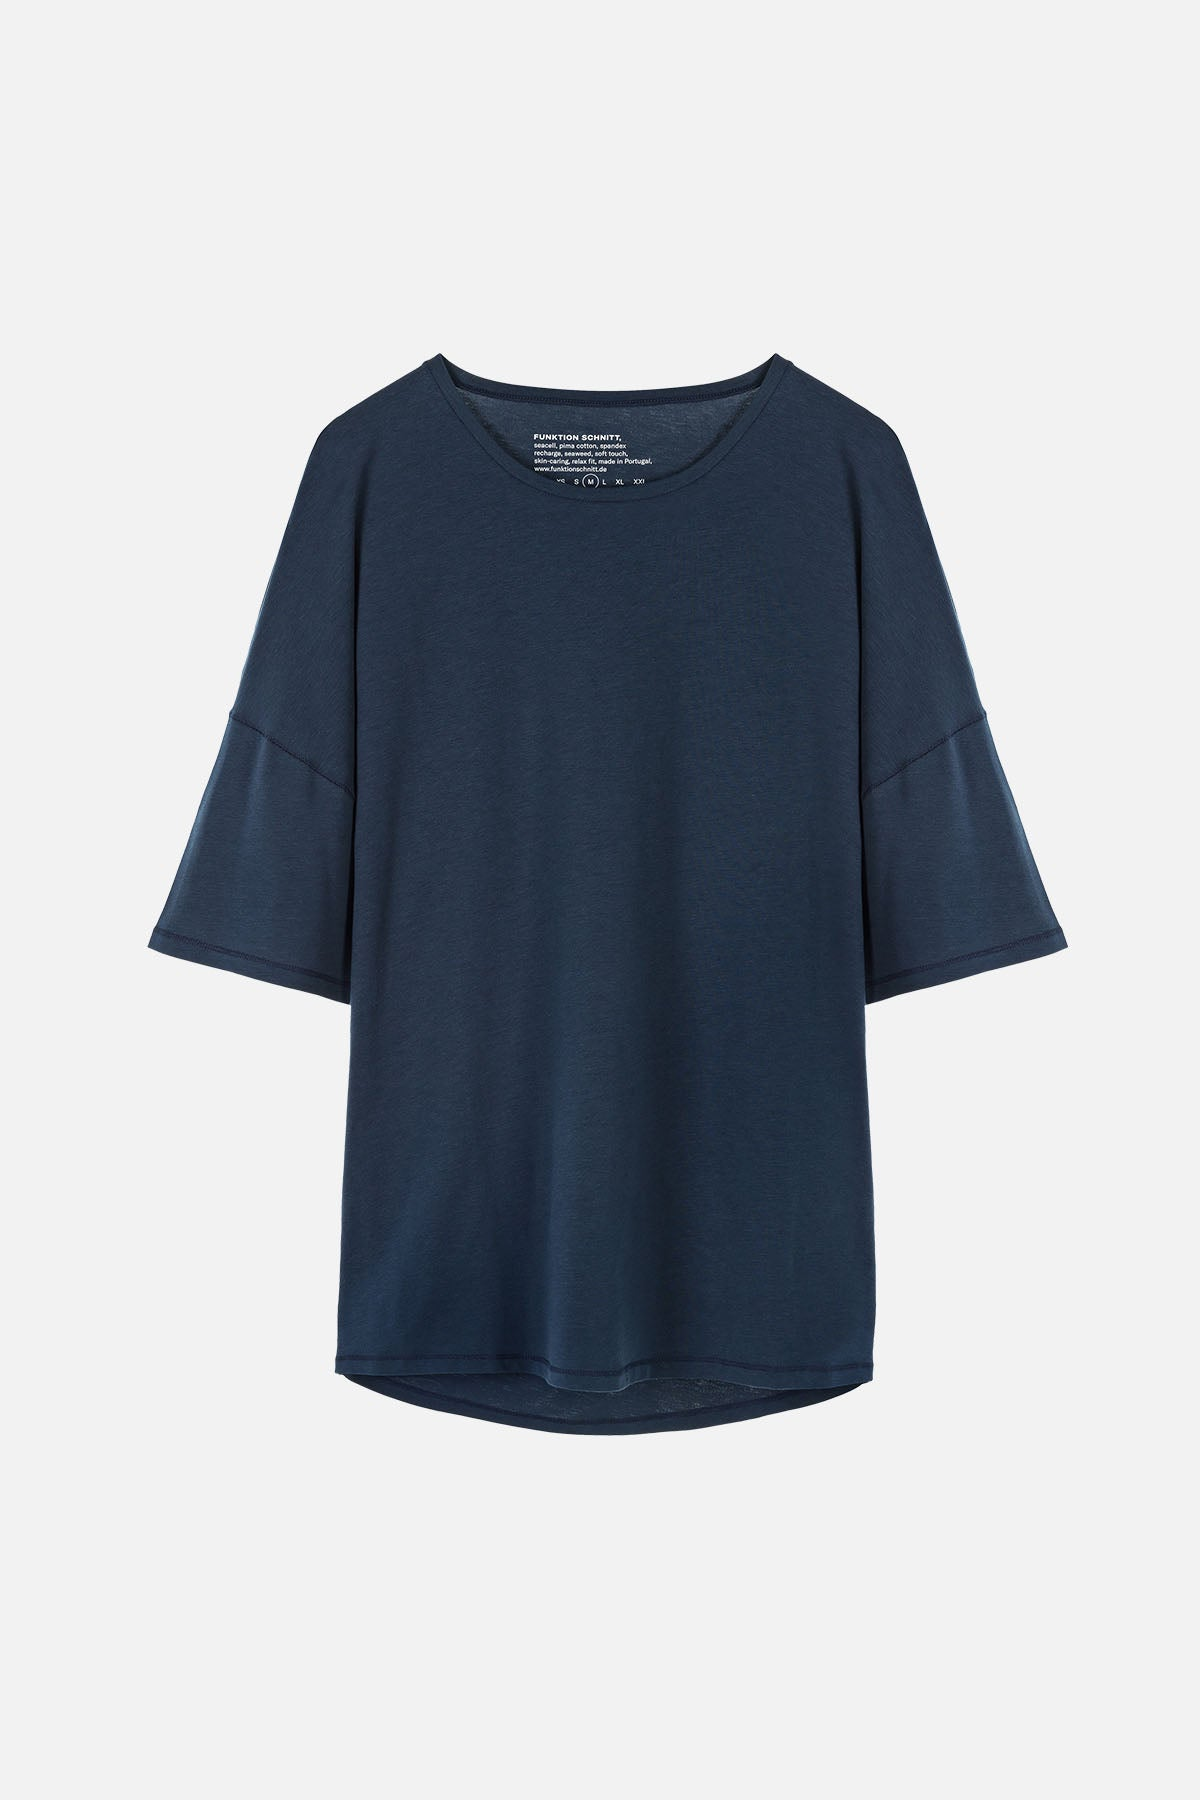 RECHARGER T-Shirt in SeaCell navy Passform relaxed Freisteller